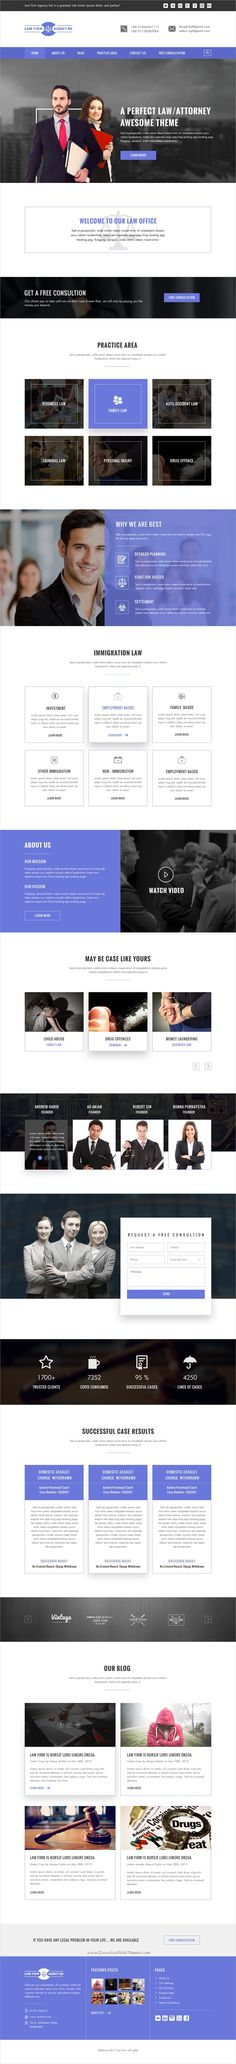 BD is wonderful premium #PSD template for #lawyer or law #firms websites download now➩  https://themeforest.net/item/law-firm-agency-bd-psd-template/19311019?ref=Datasata